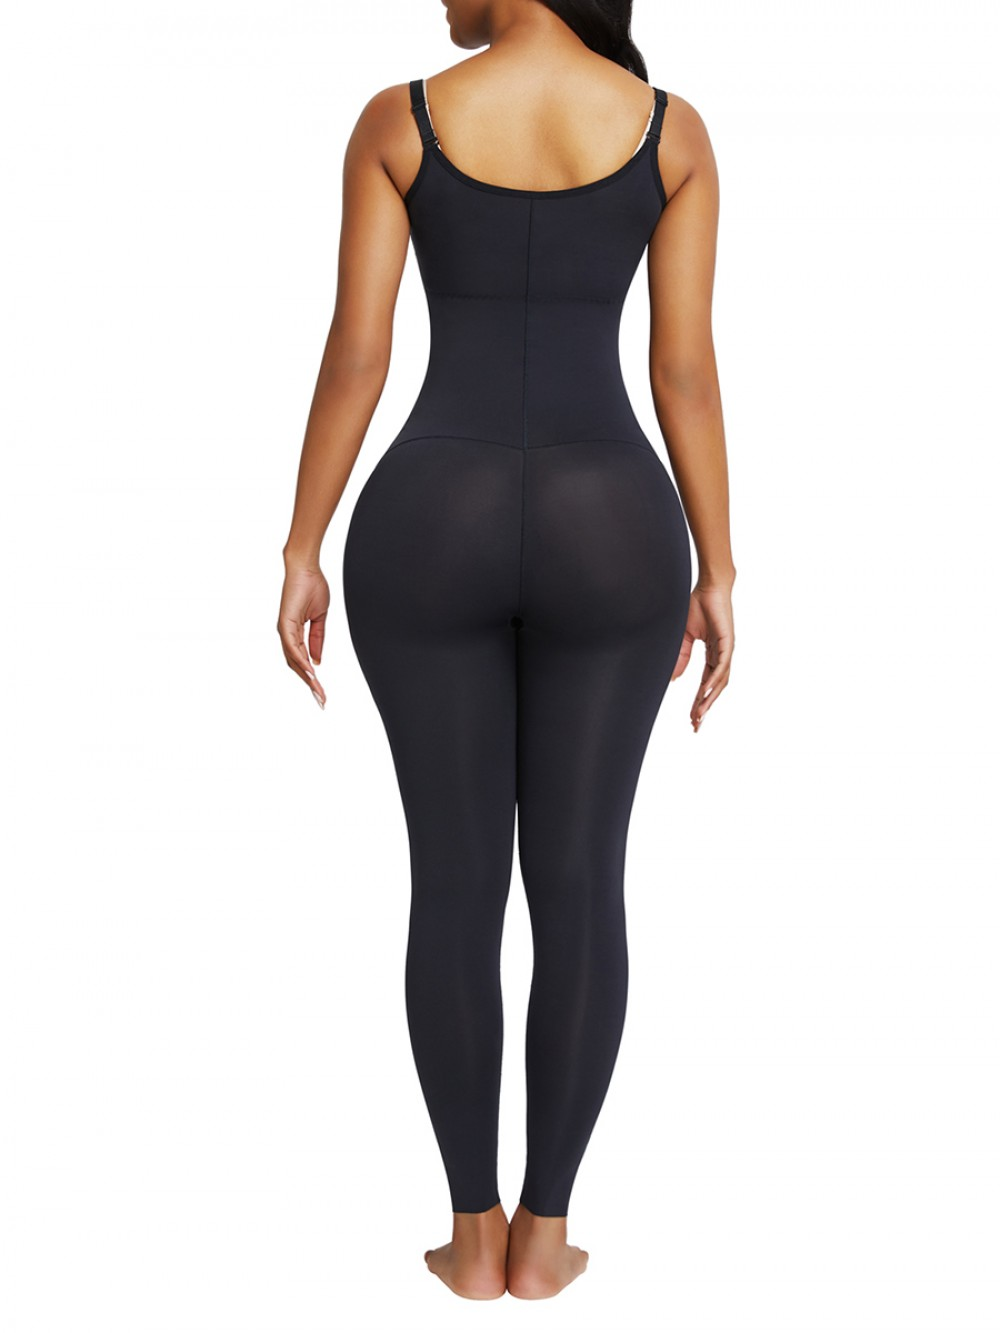 Black Full Body Shaper Open Bust Adjustable Straps Compression Silhouette